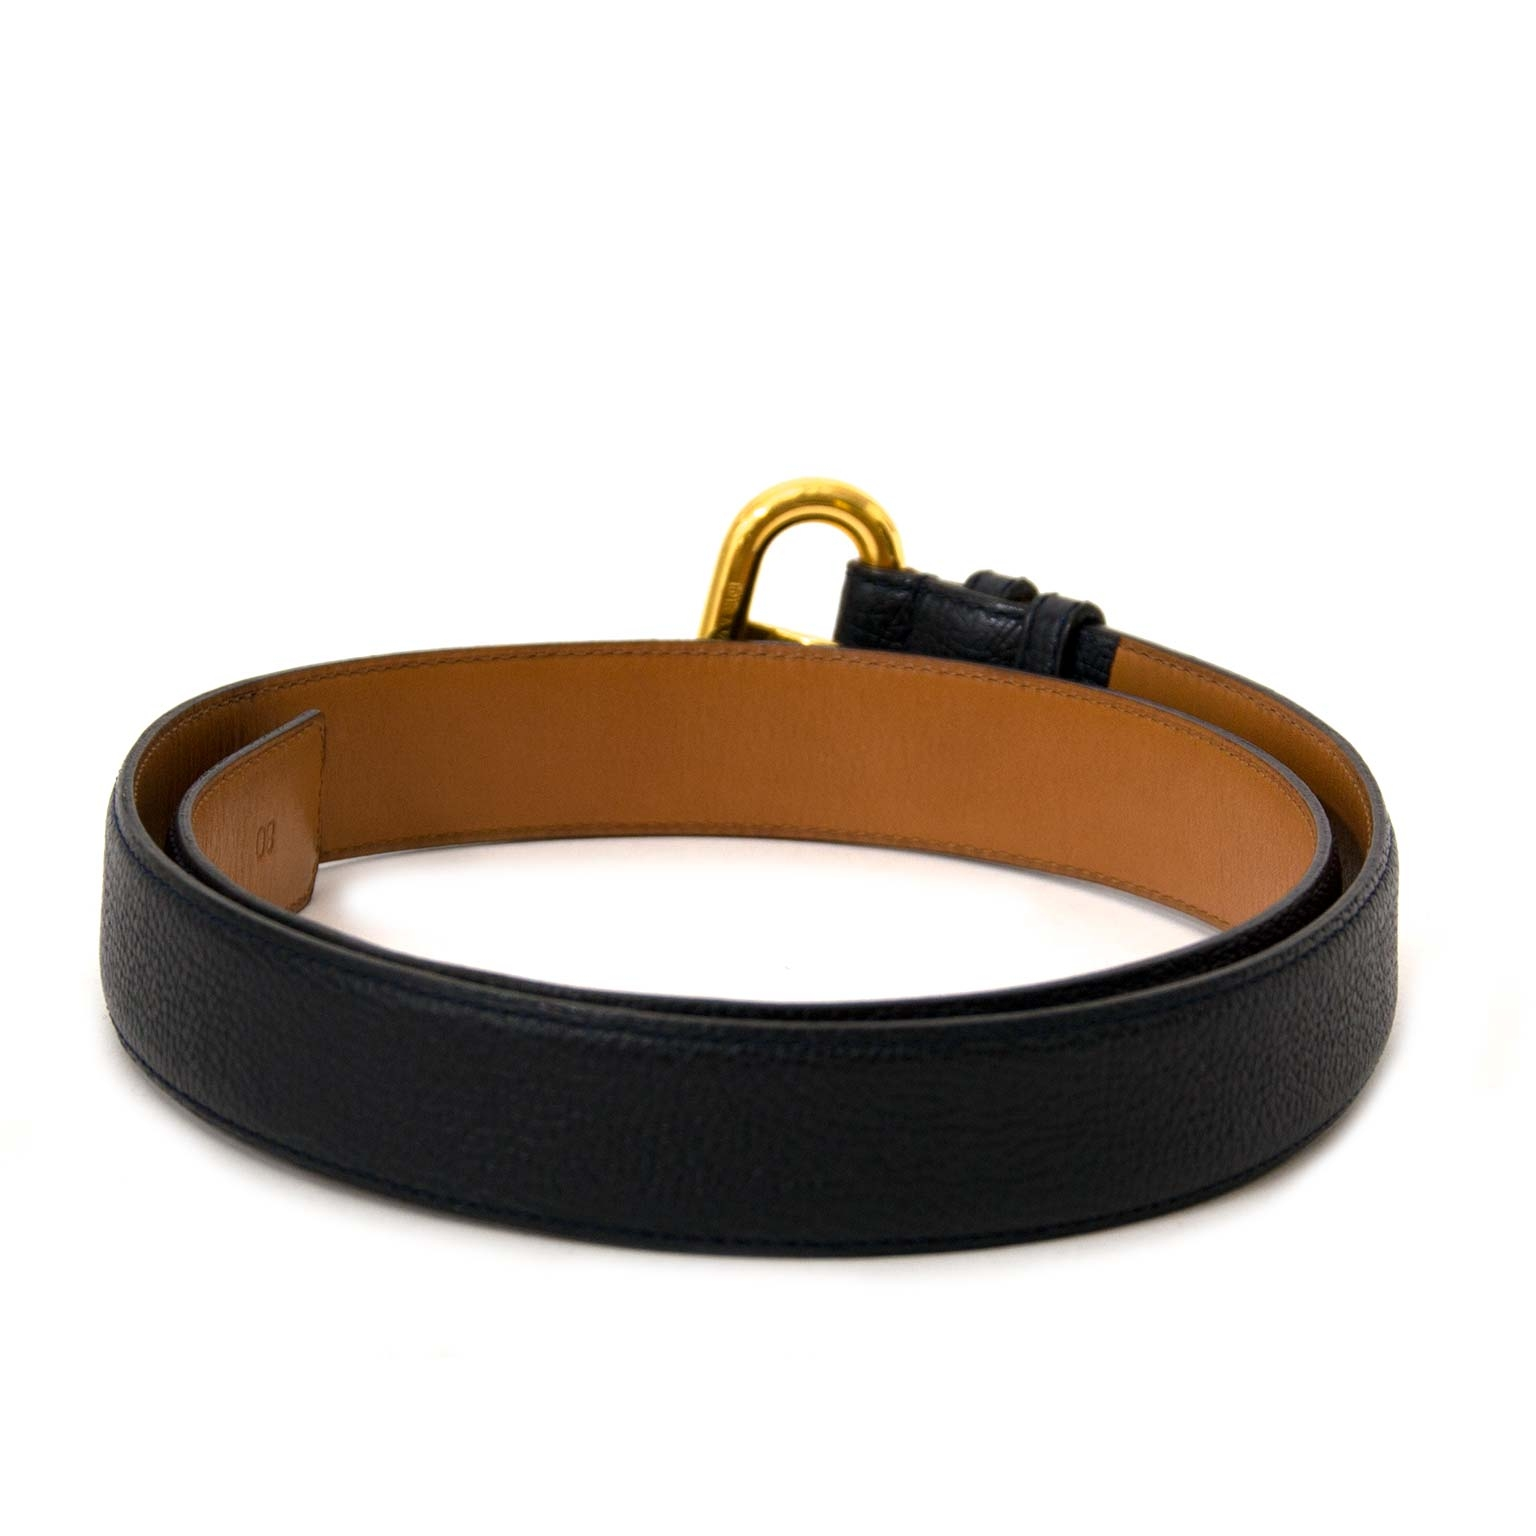 Delvaux Dark Blue Leather Belt for sale online at labellov. Koop en verkoop uw authentieke designer accessoires.